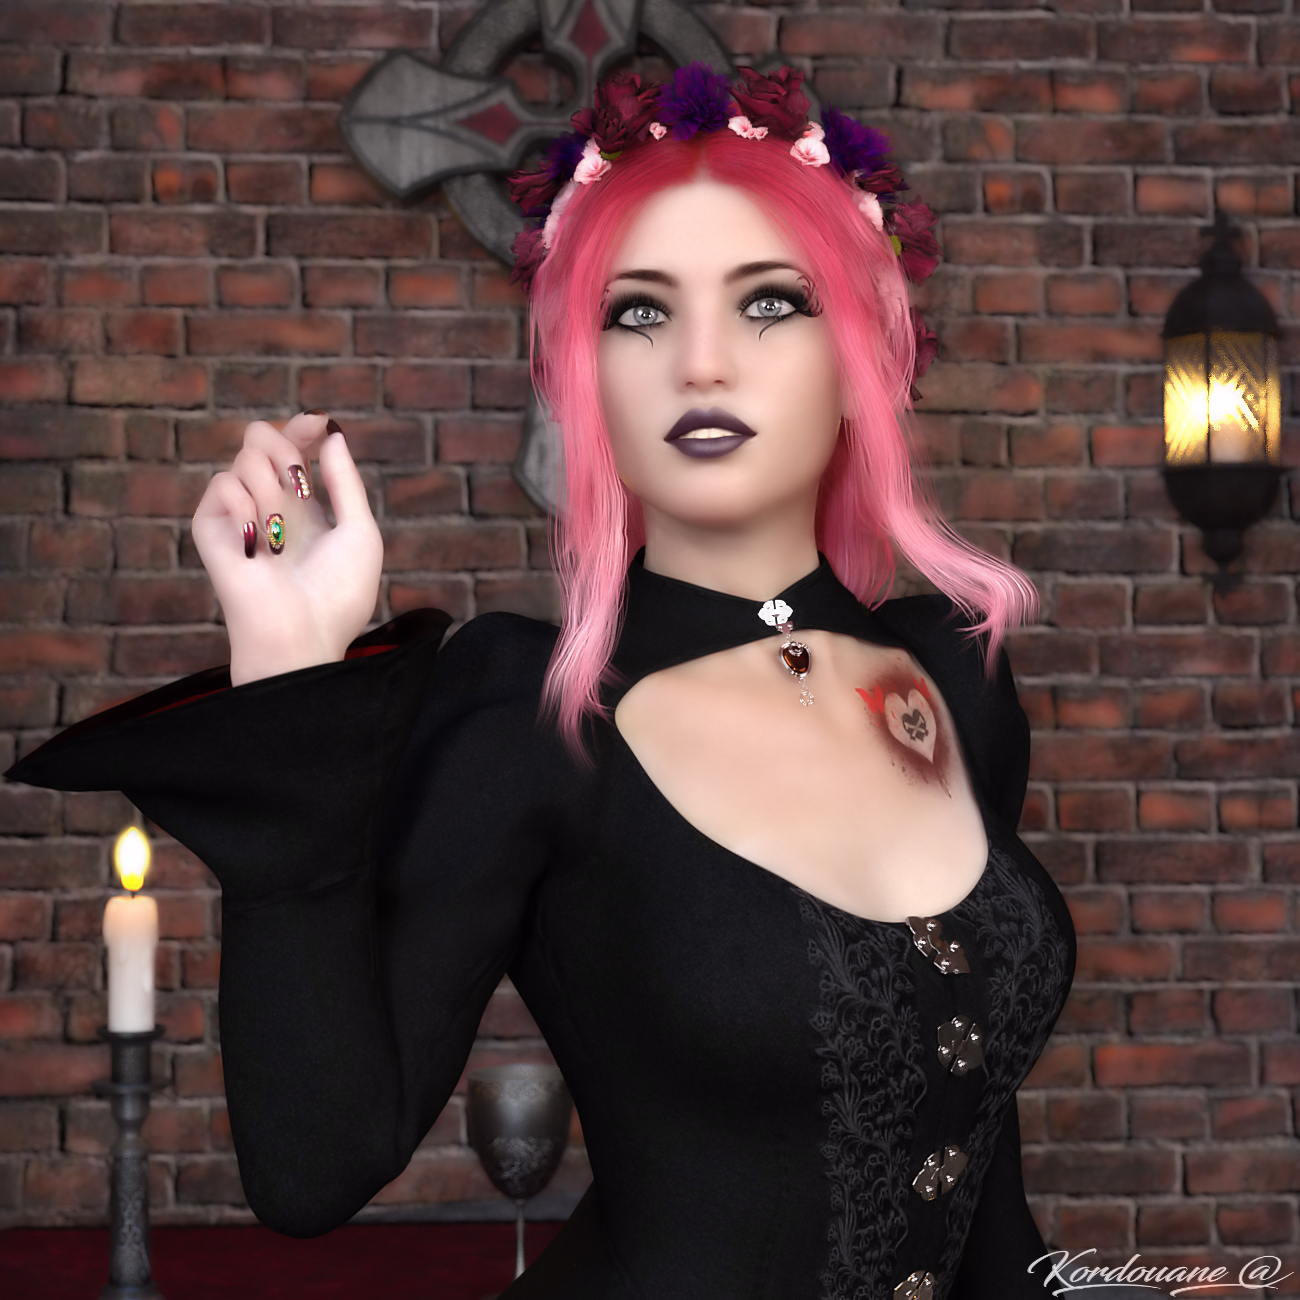 For the heart of a Gothic Valentine by kordouane